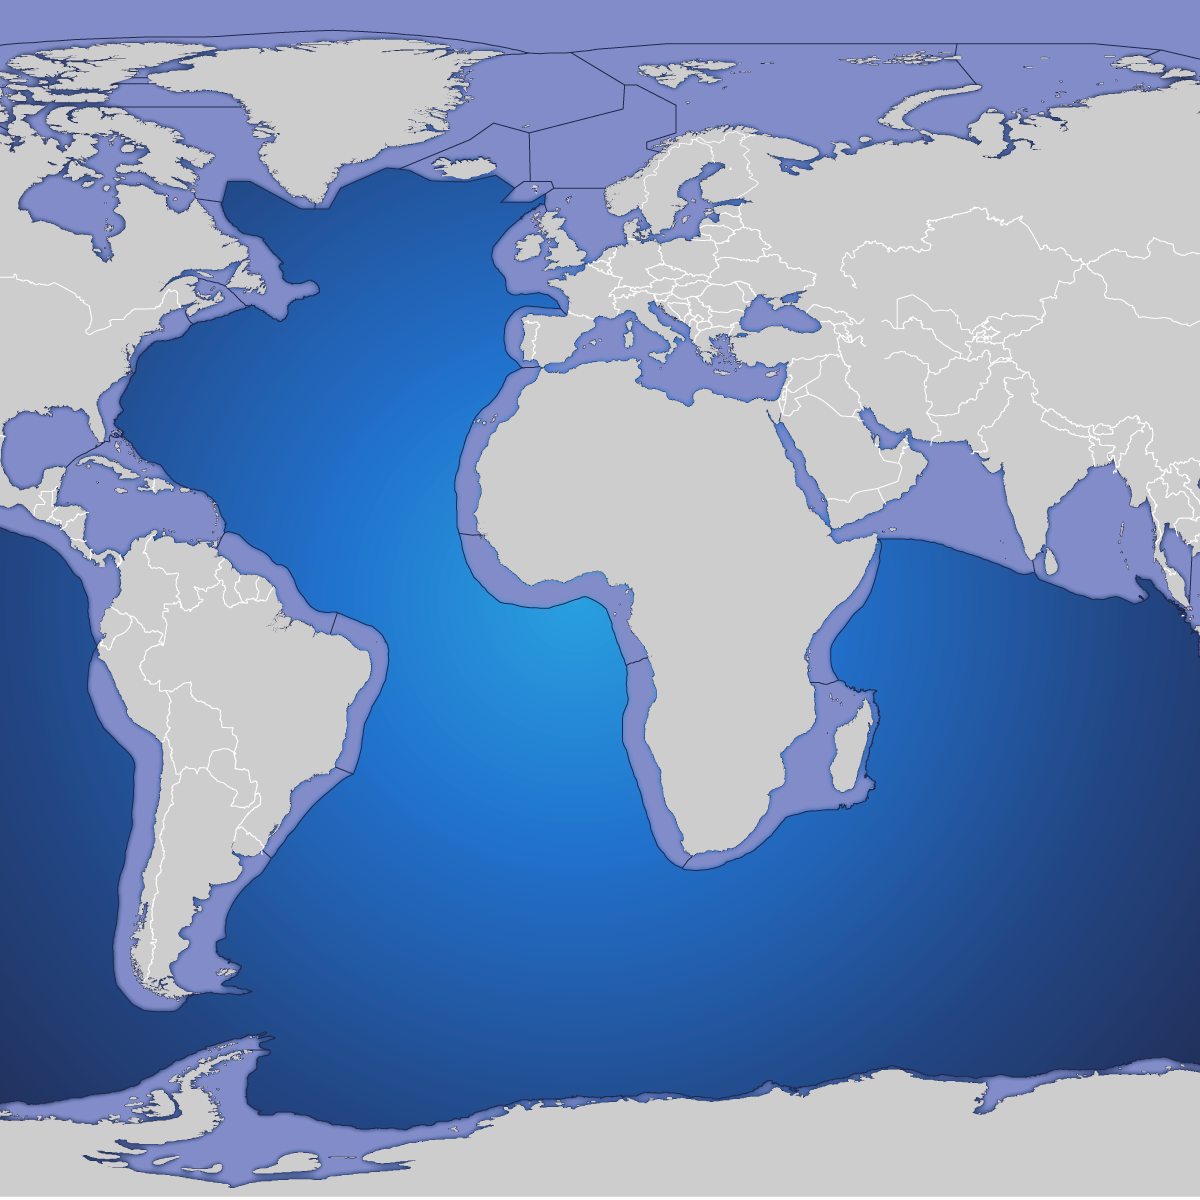 Large Marine Ecosystems: Assessment and Management Coupon